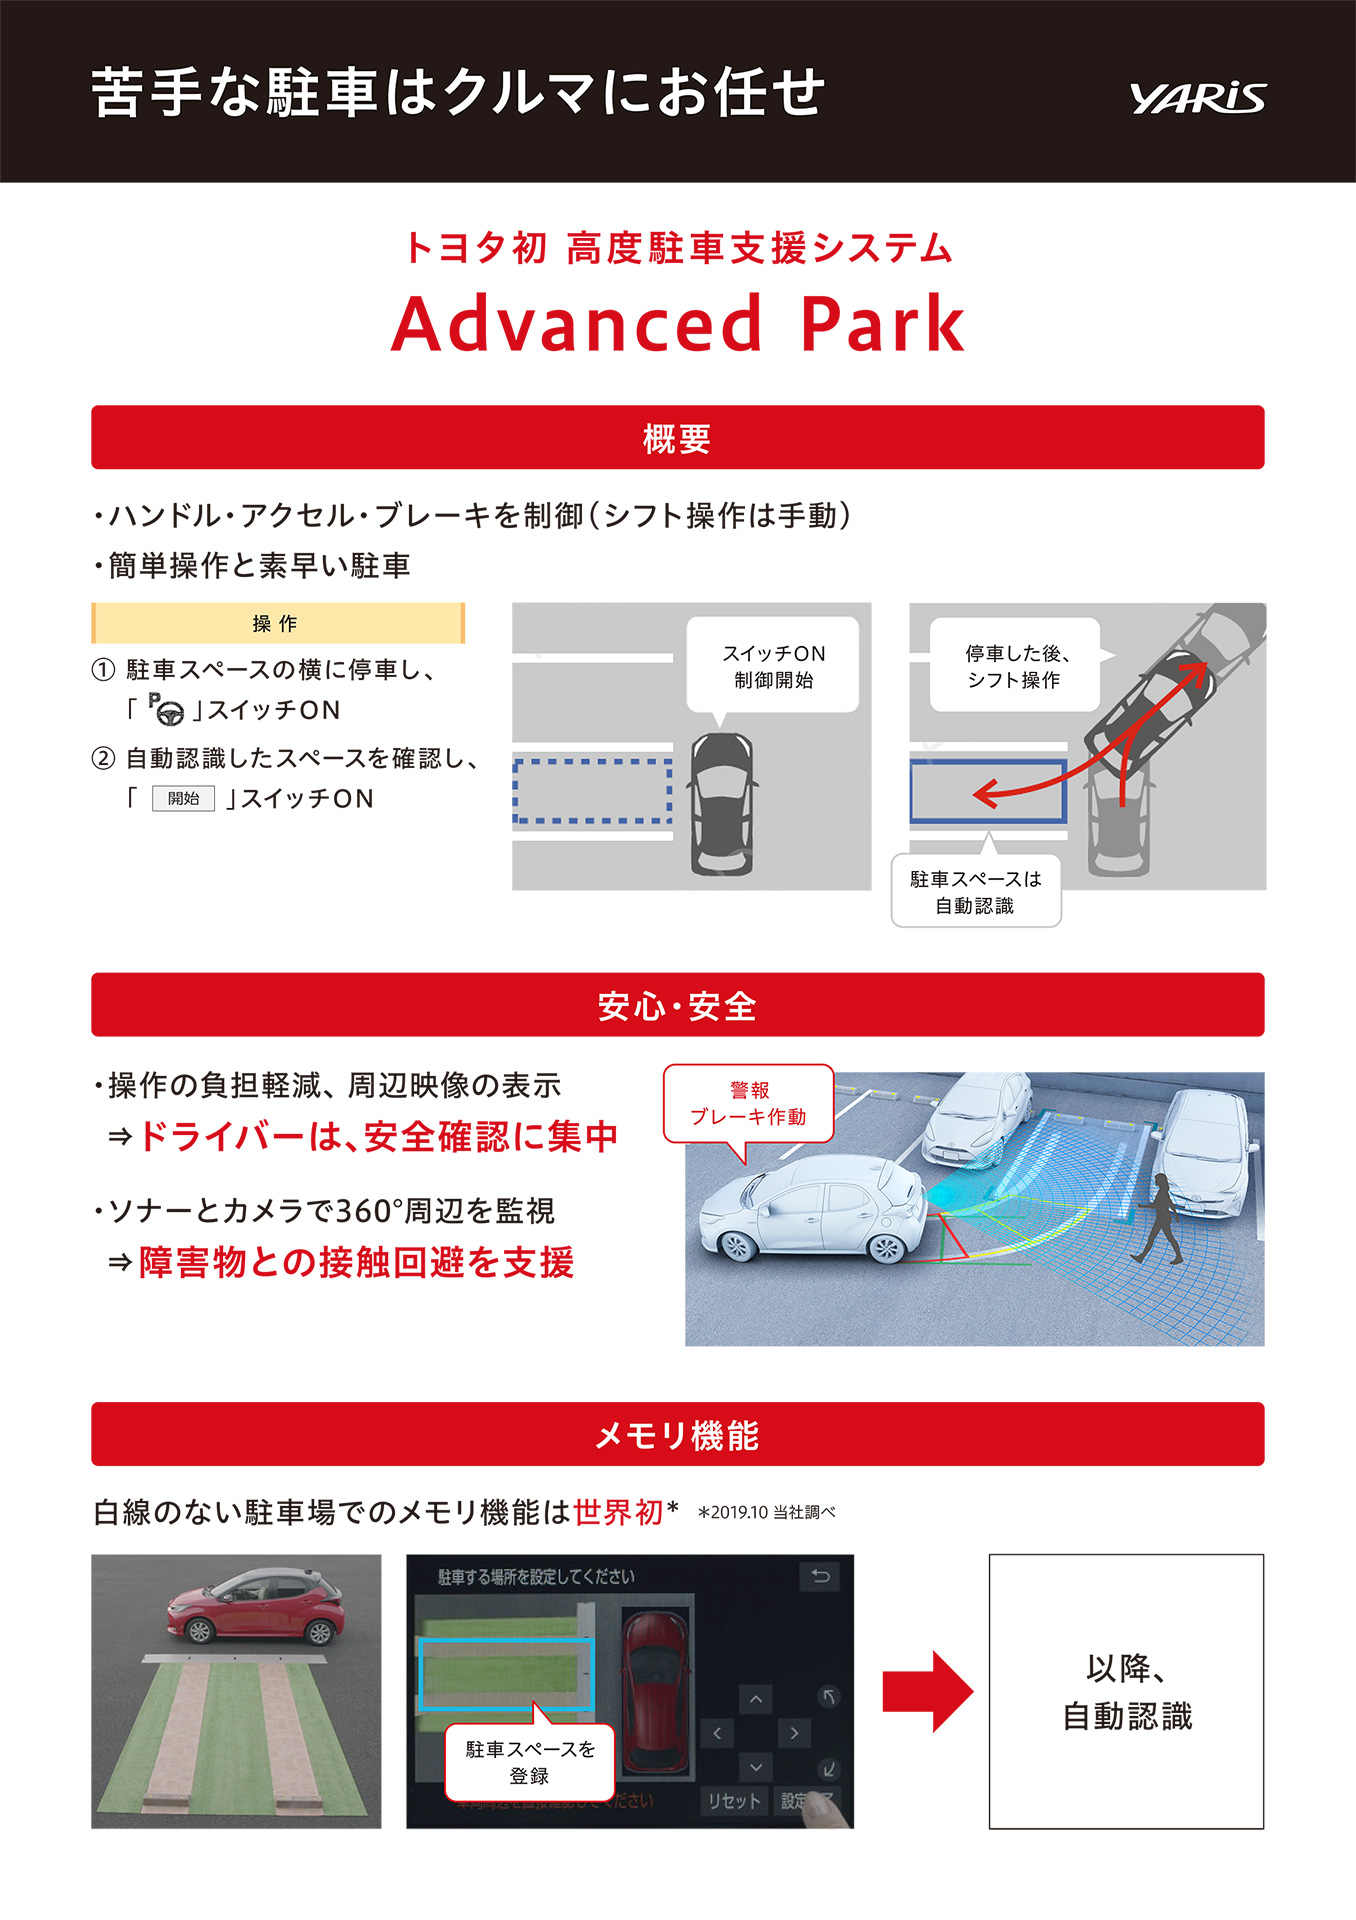 Advanced park